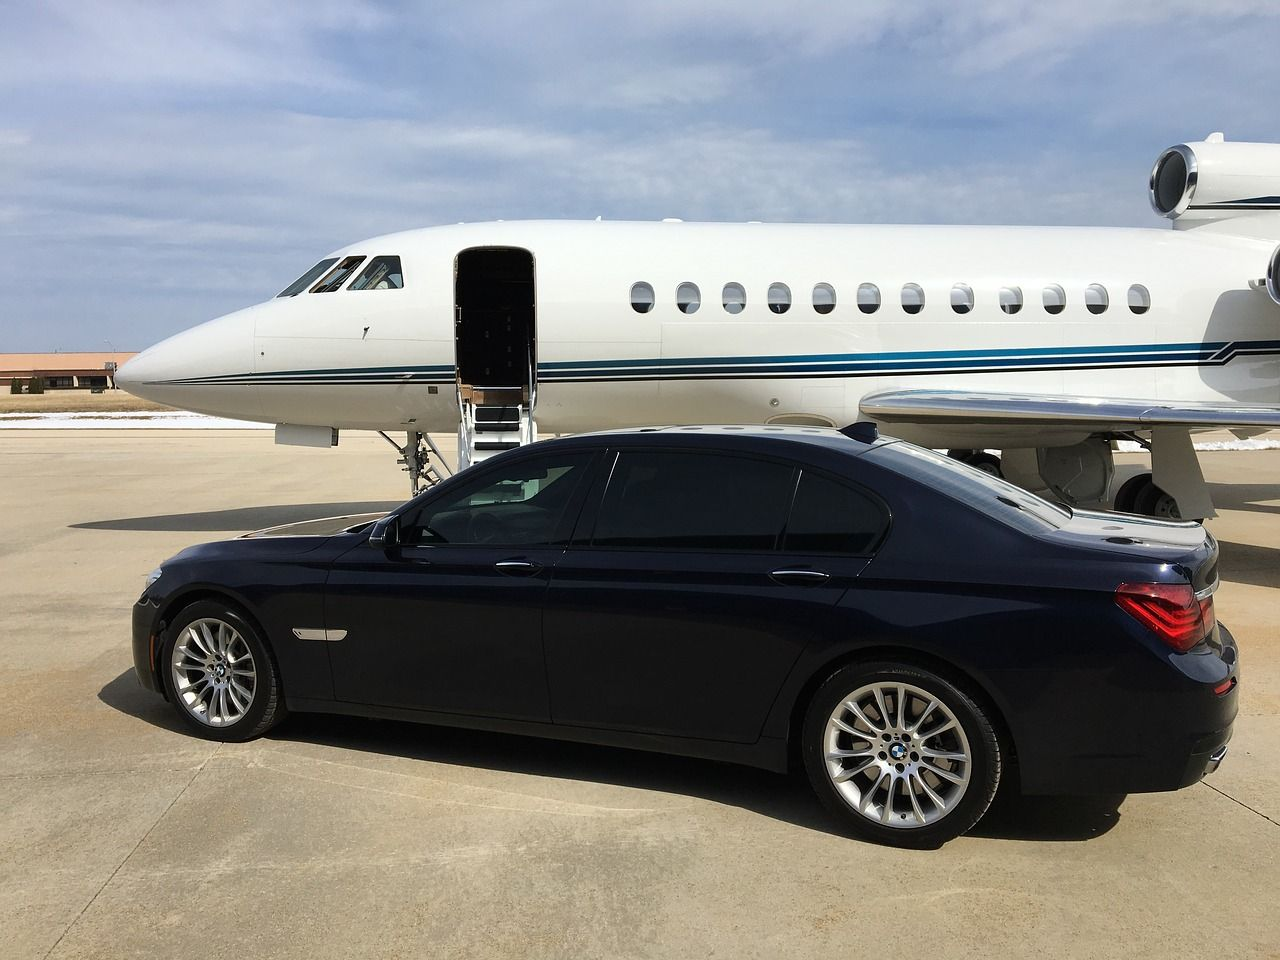 A 'High' Level of Flying Private Jets JetSet